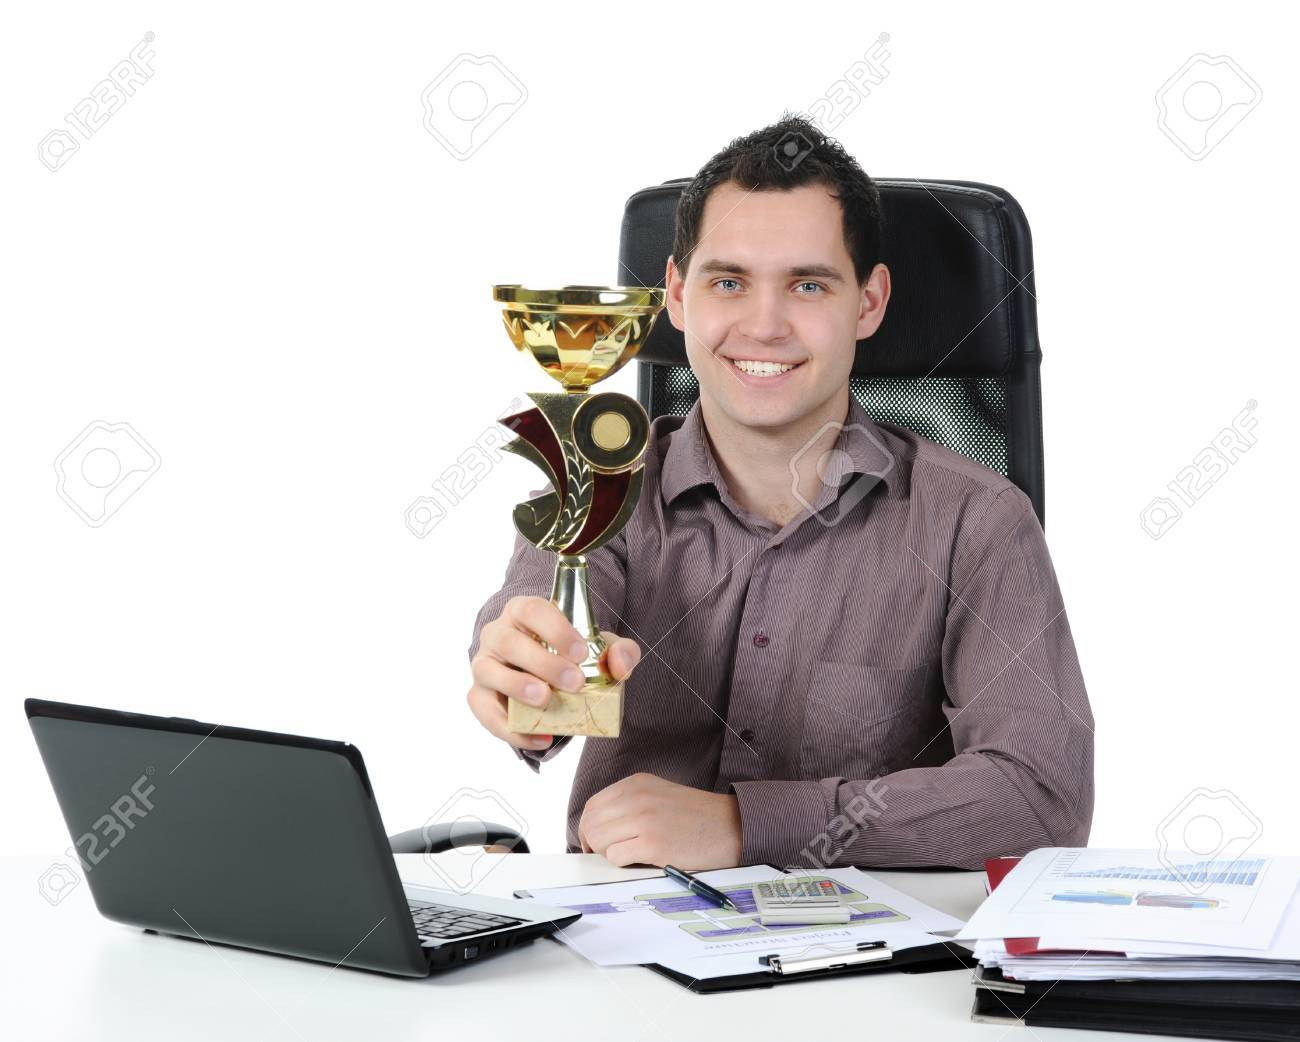 Portrait of a happy businessman with the cup in his hand. Isolated on white background Stock Photo - 8596806